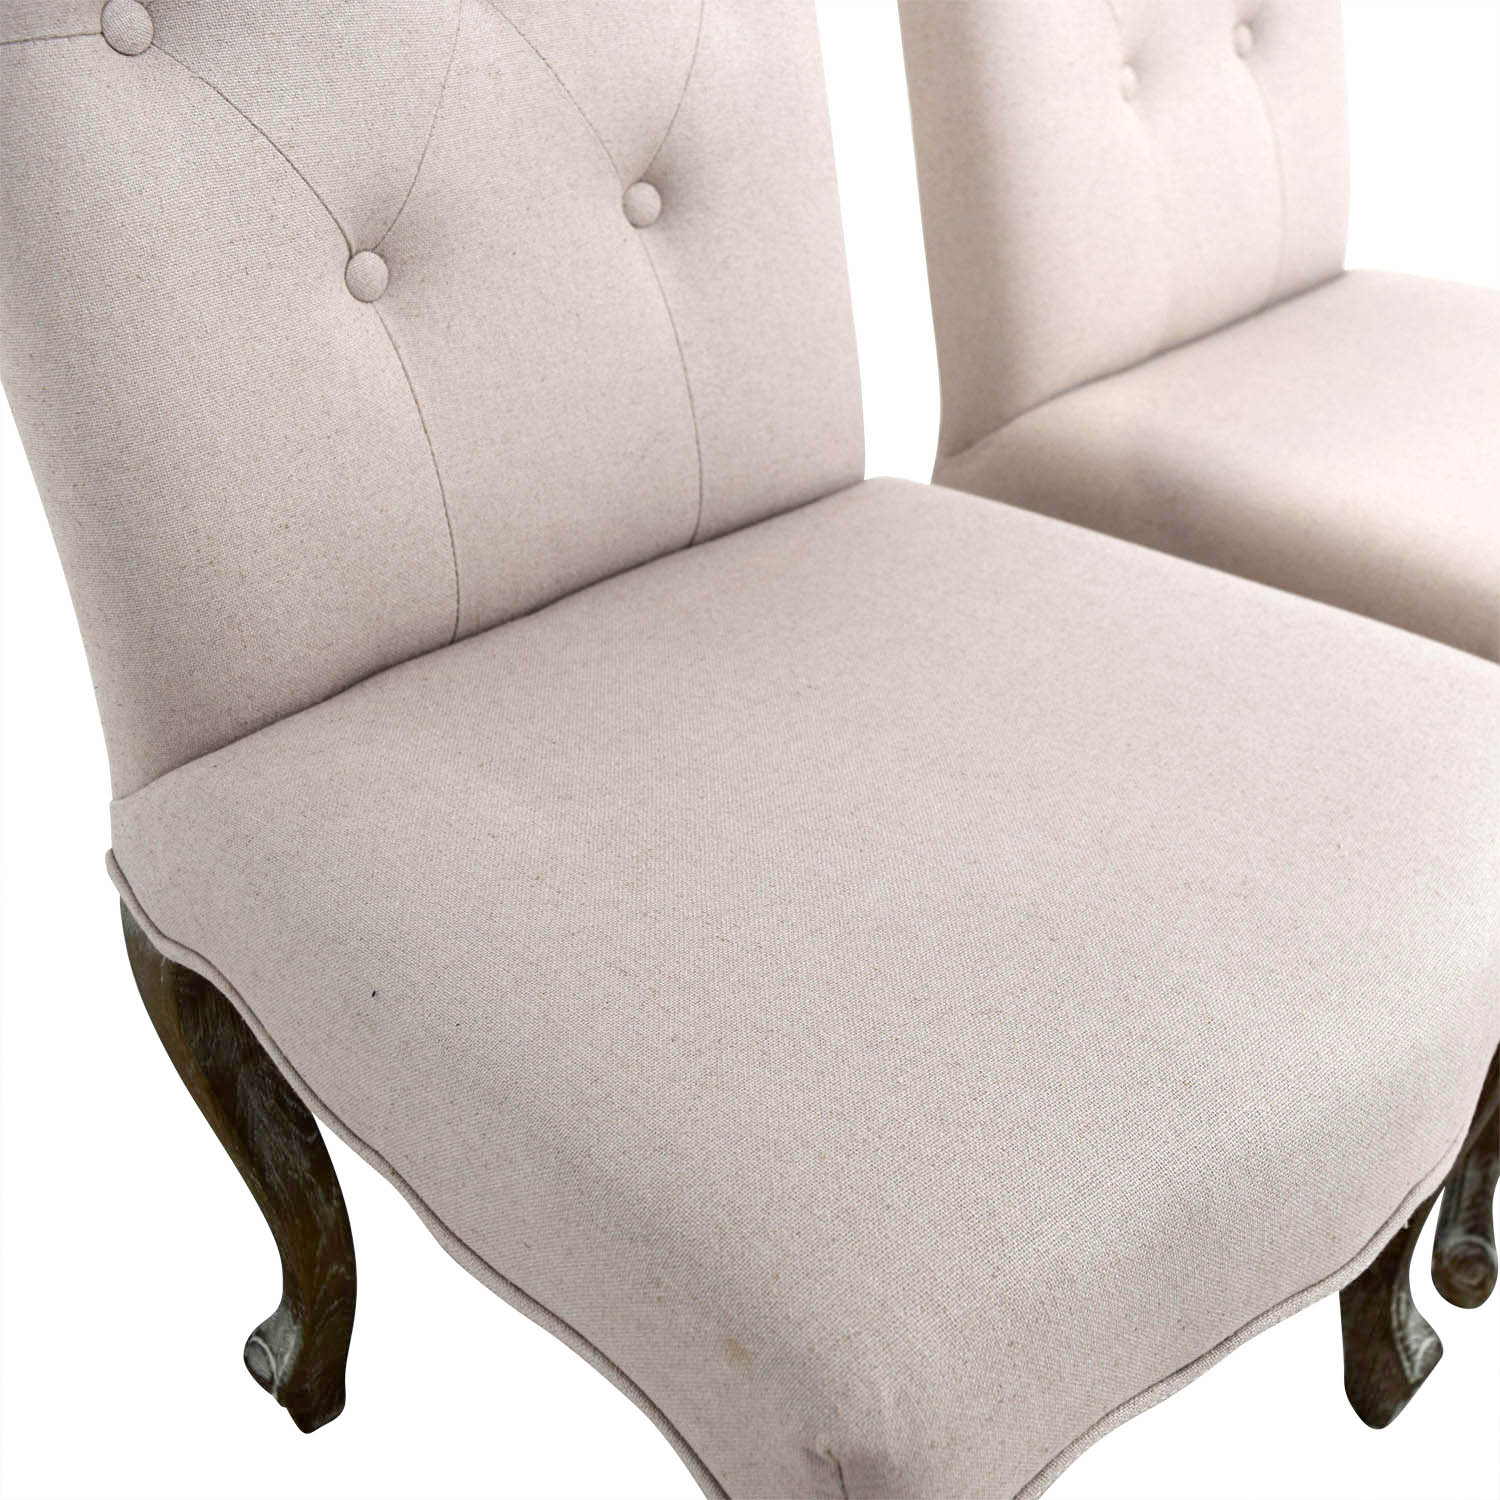 Safavieh Tufted Beige Side Chairs Safavieh